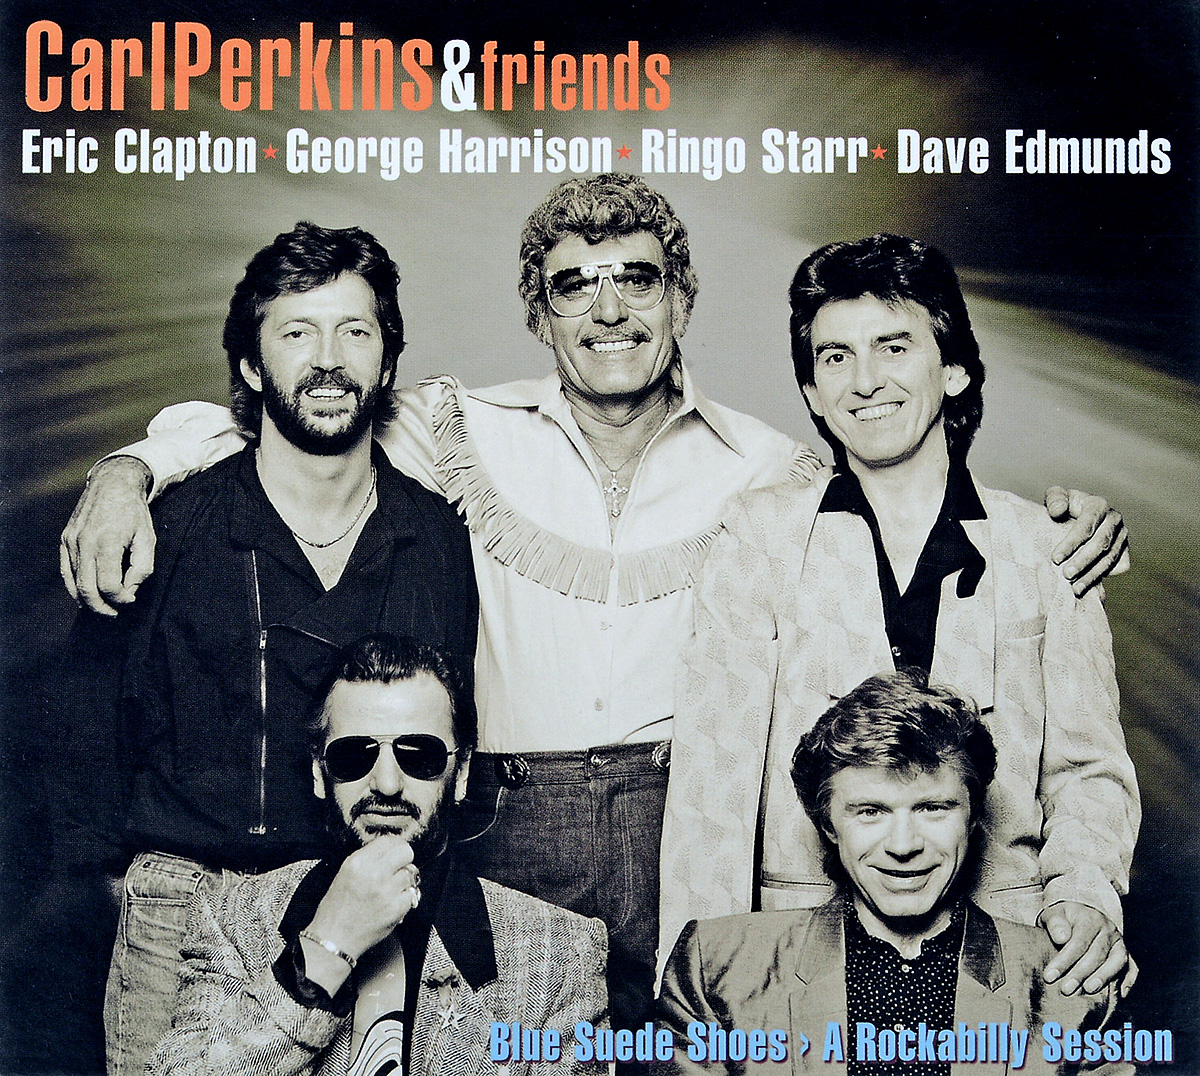 Carl Perkins & Friends: Blue Suede Shoes: A Rockabilly Session: 30th Anniversary Edition (CD + DVD) dorothy perkins dorothy perkins do005ewhqb71